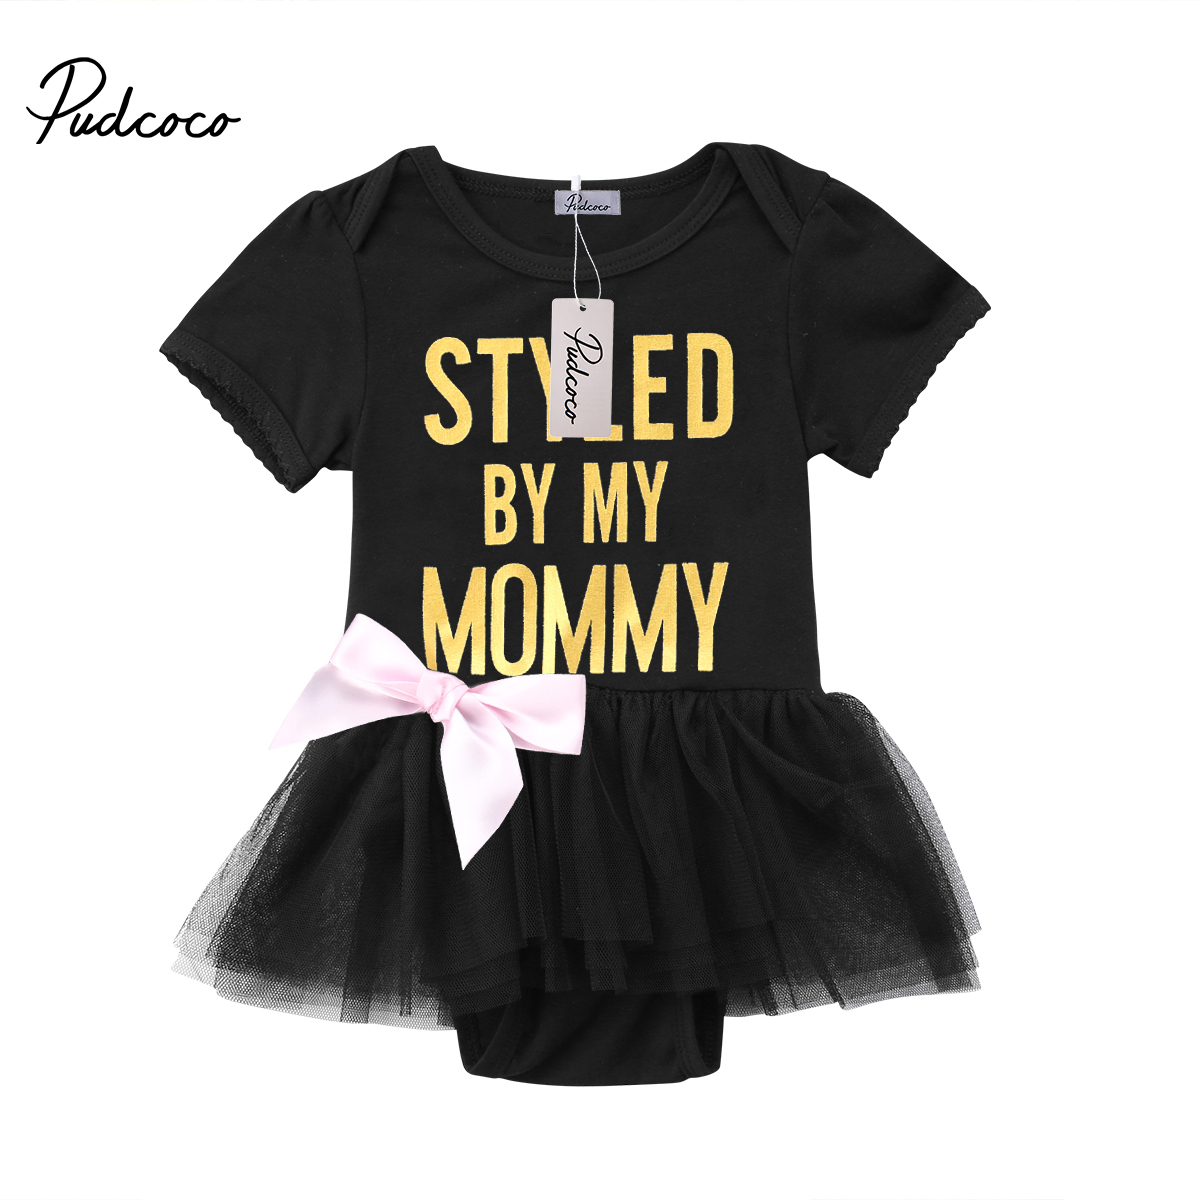 2018 Newborn Baby Girls Romper Toddler Baby Girl Black Romper Party Lace Tulle Jumper Sundress Girls Clothes Outfit 0-2T